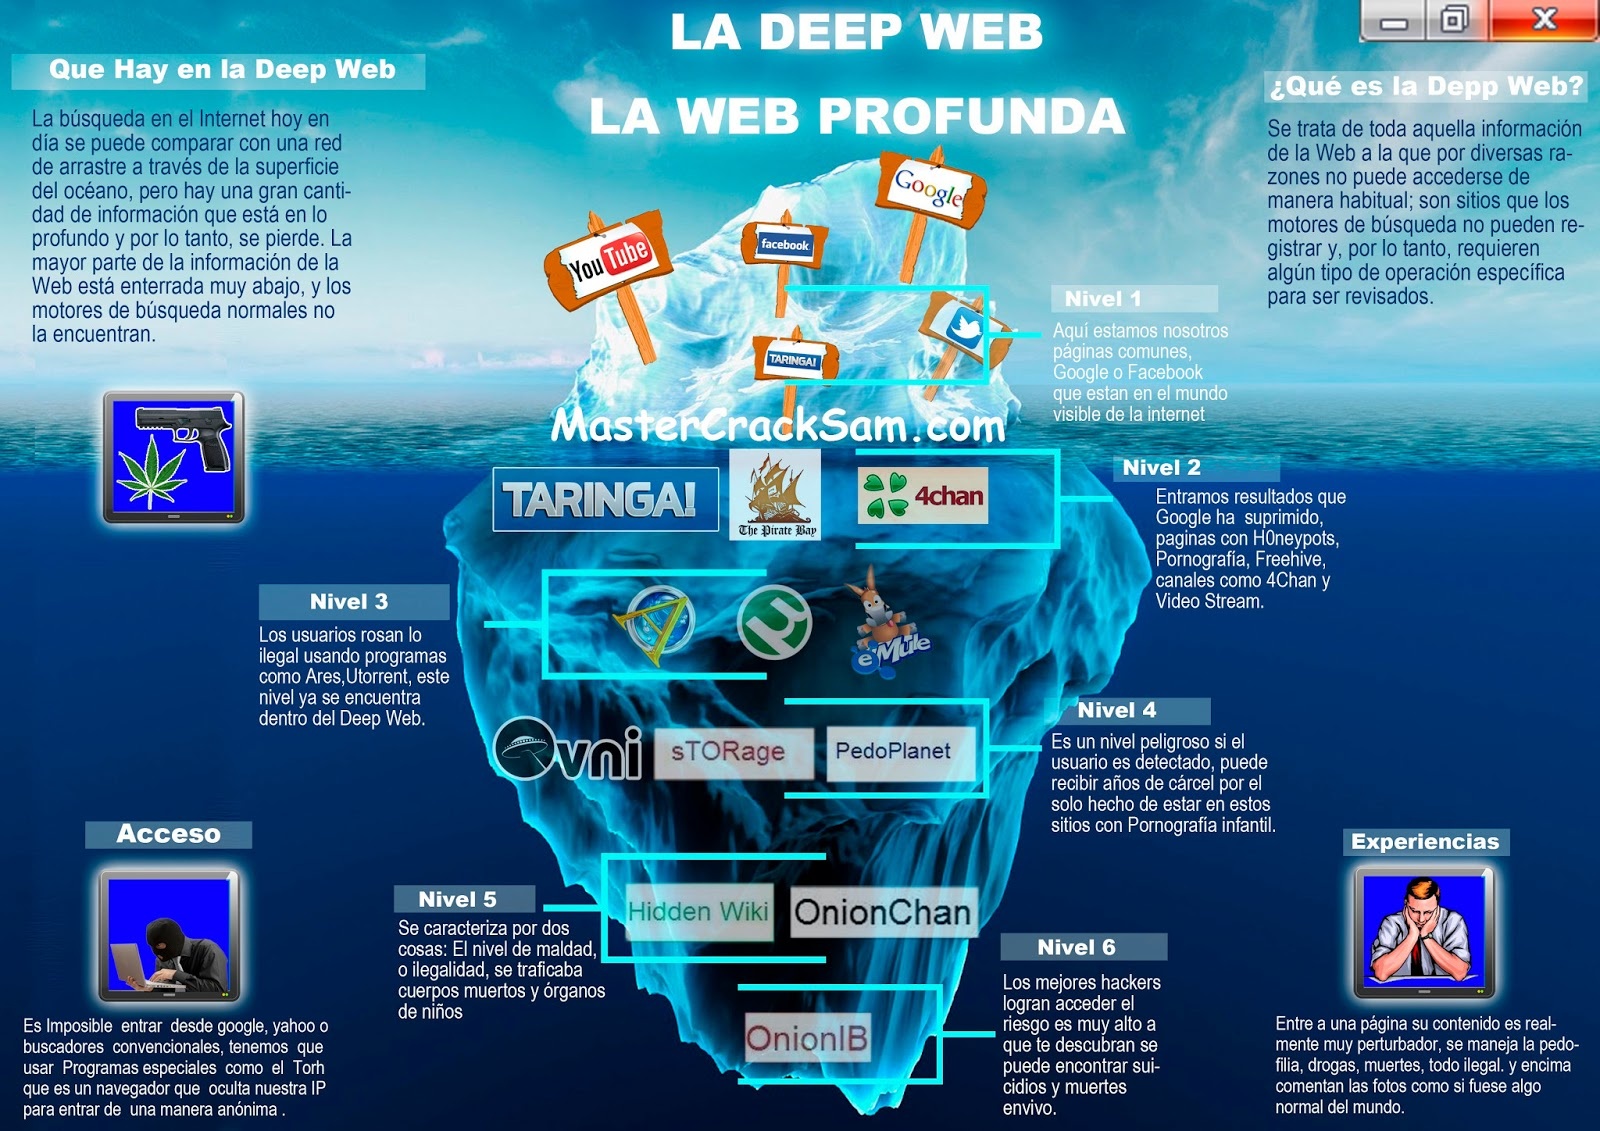 the deep web a discrete section of the internet One step ahead: pedophiles on the deep web joseph cox jan 28 2015 sites such as these are part of the deep web: the section of the internet unavailable to normal search engines such as google such as browsing the internet.